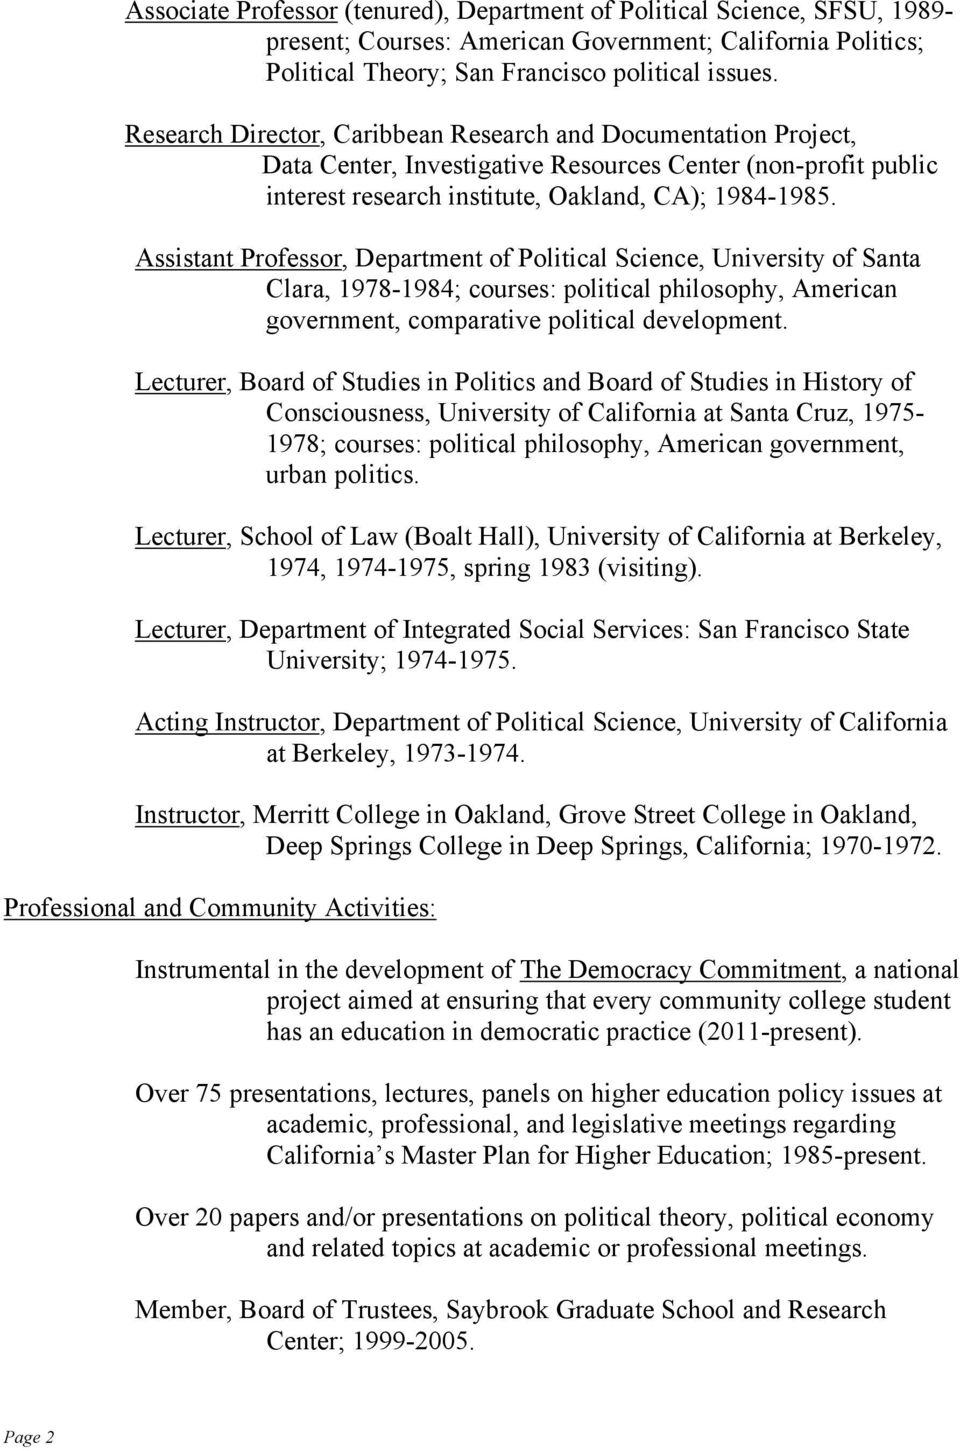 Assistant Professor, Department of Political Science, University of Santa Clara, 1978-1984; courses: political philosophy, American government, comparative political development.